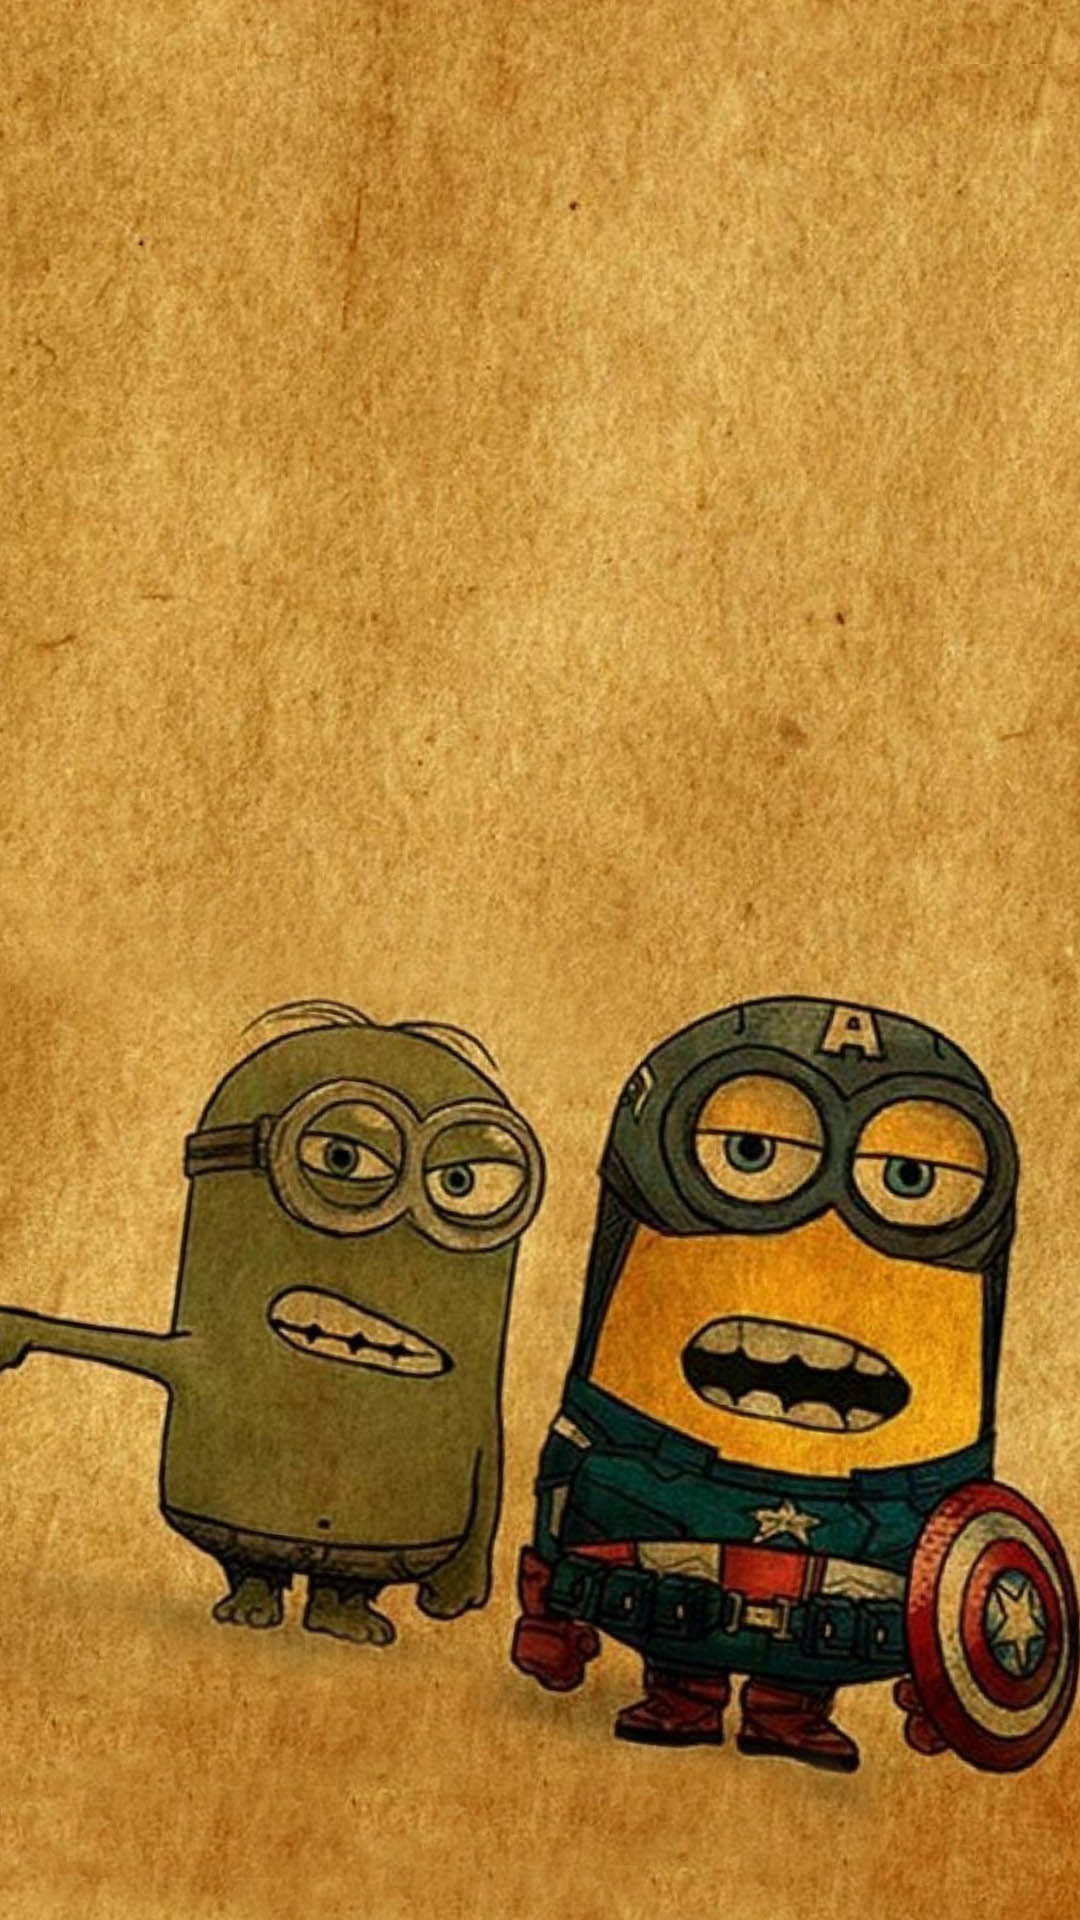 Download cool funny avenger minions 1080 x 1920 Wallpapers – 4566530 –  avengers minion funny | mobile9